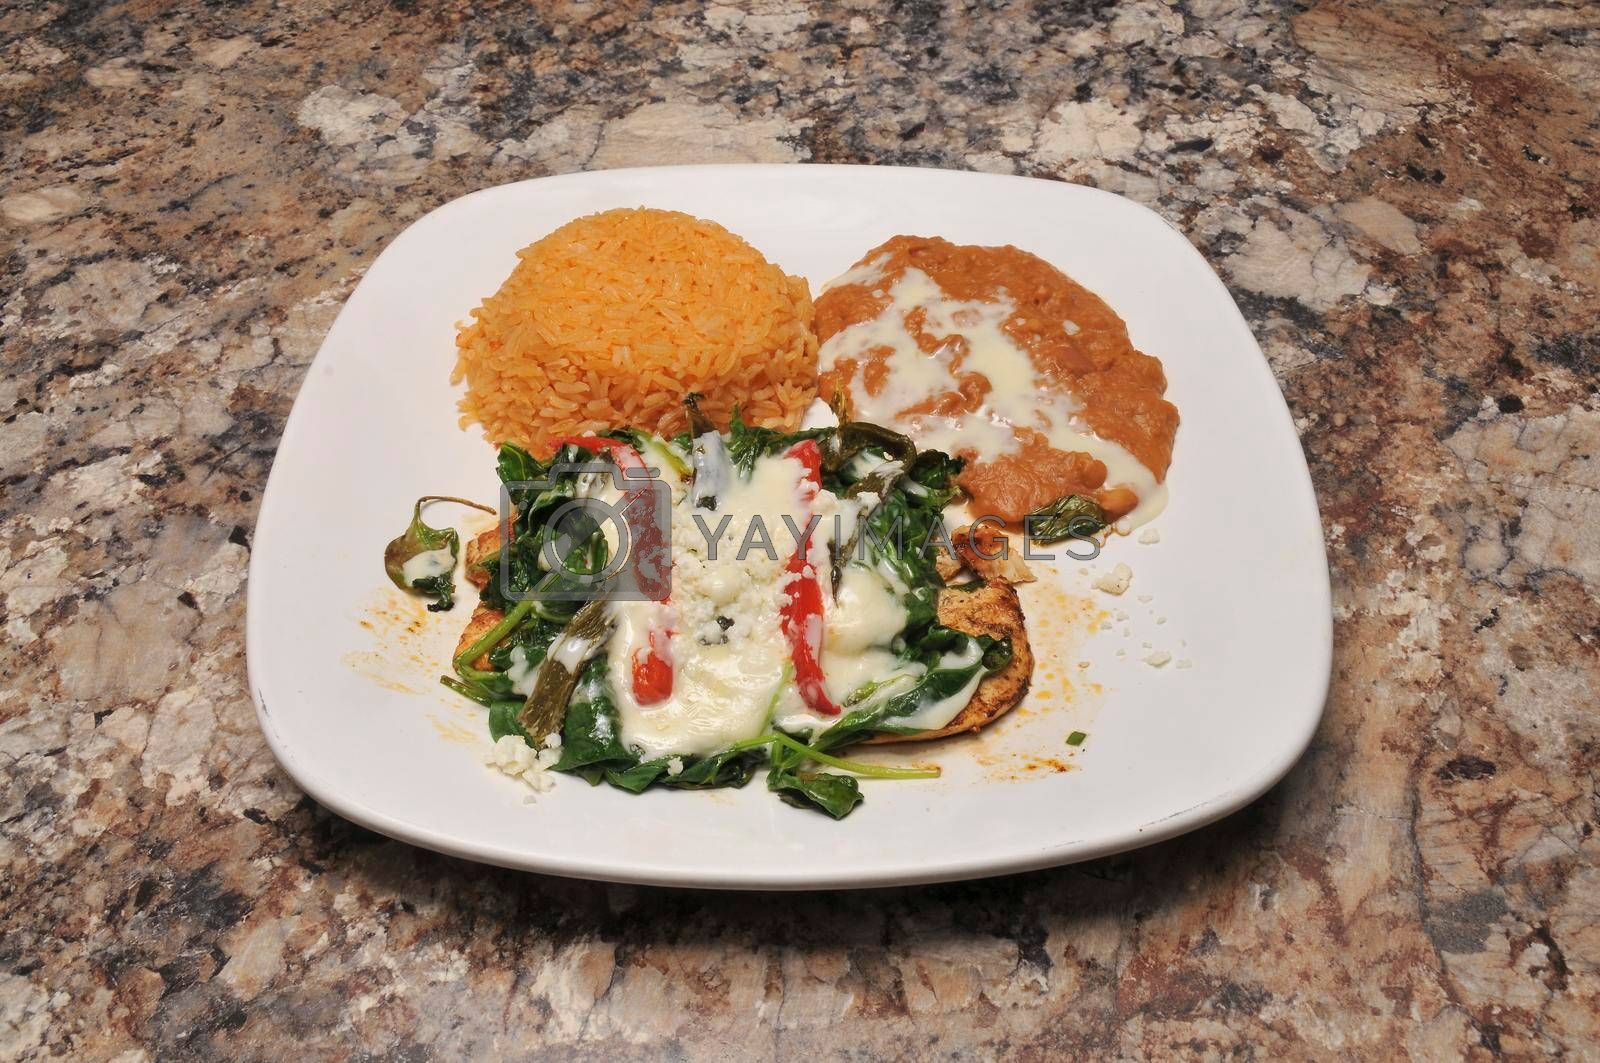 Delicious poultry dish known as milanese popeye chicken